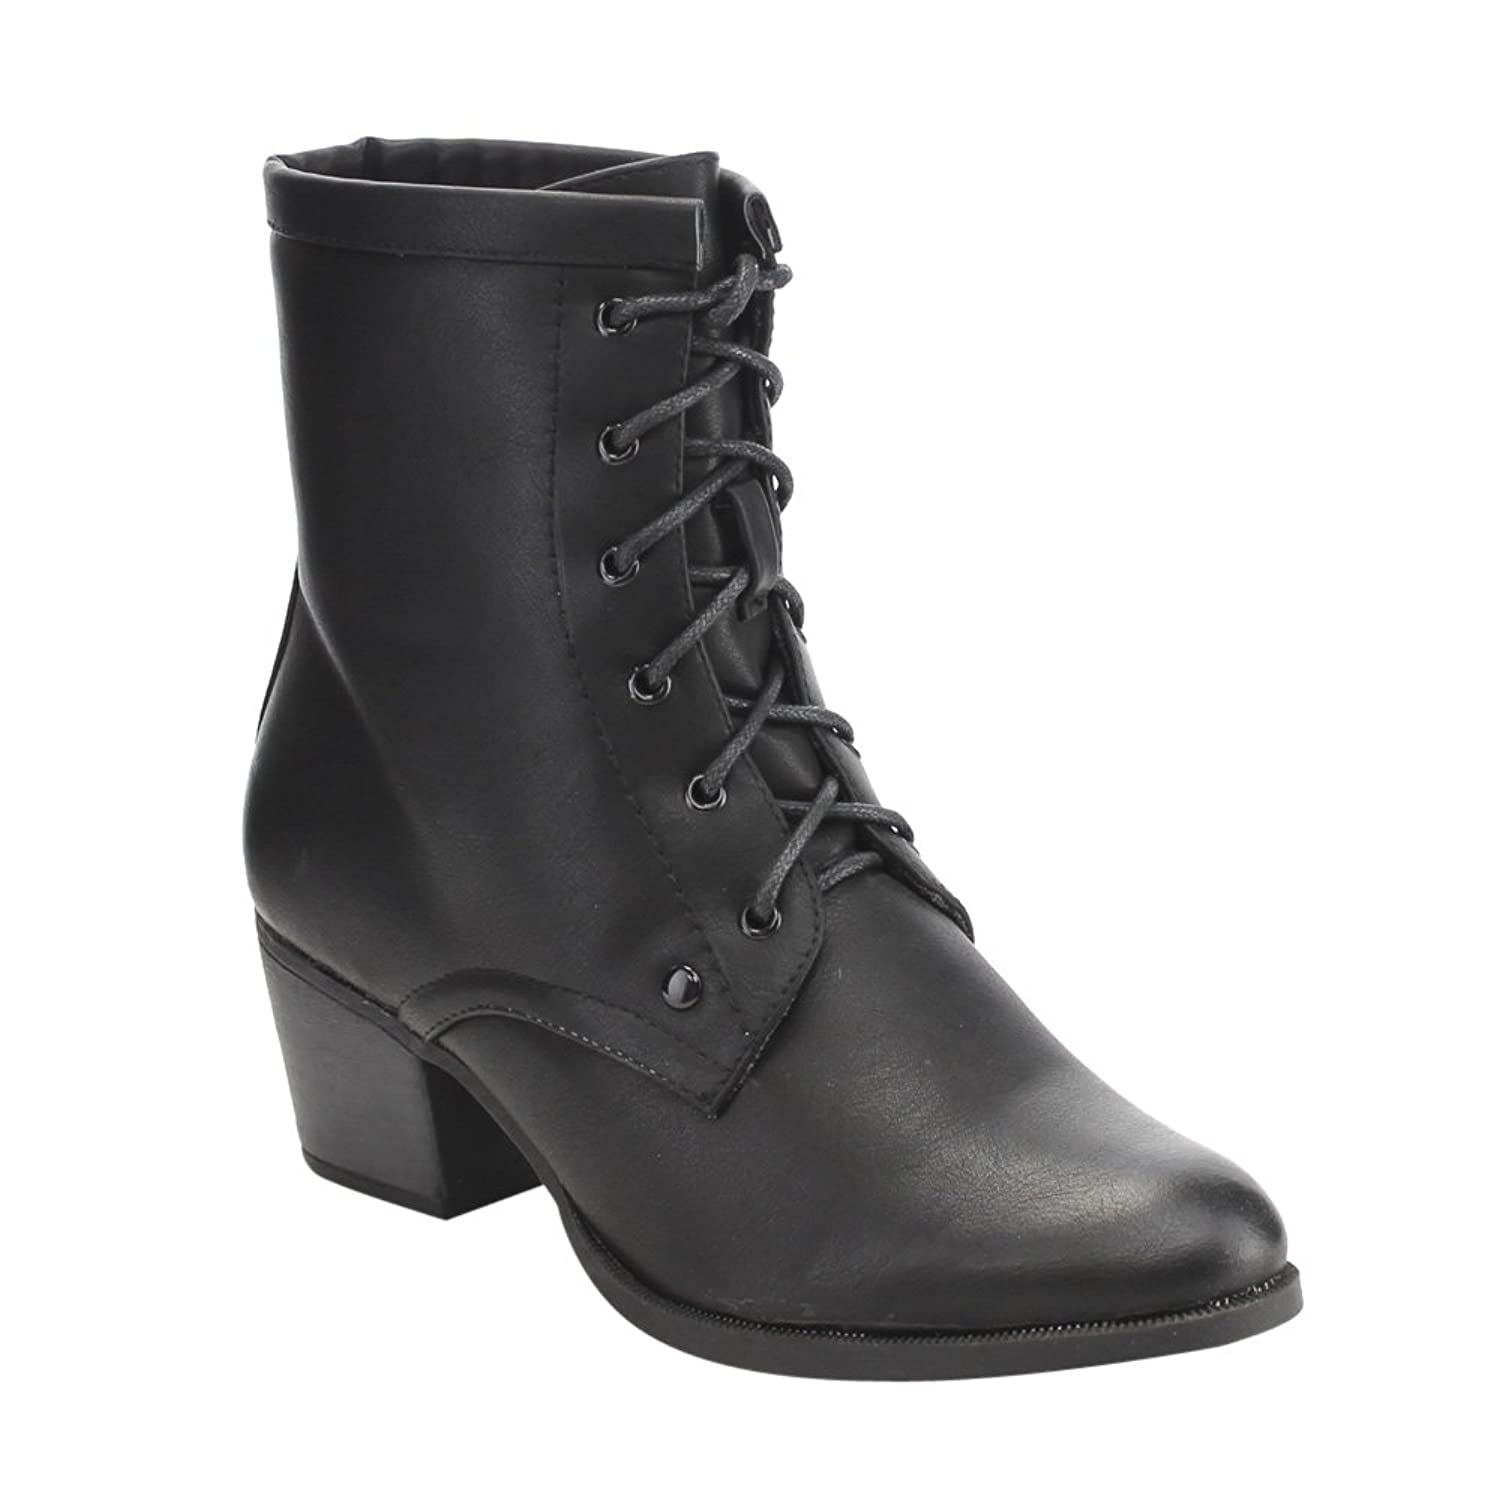 Vintage Style Boots C LABEL AE35 Womens Vintage Front Lace Up Block Heel Mid Calf Dress Boots  AT vintagedancer.com